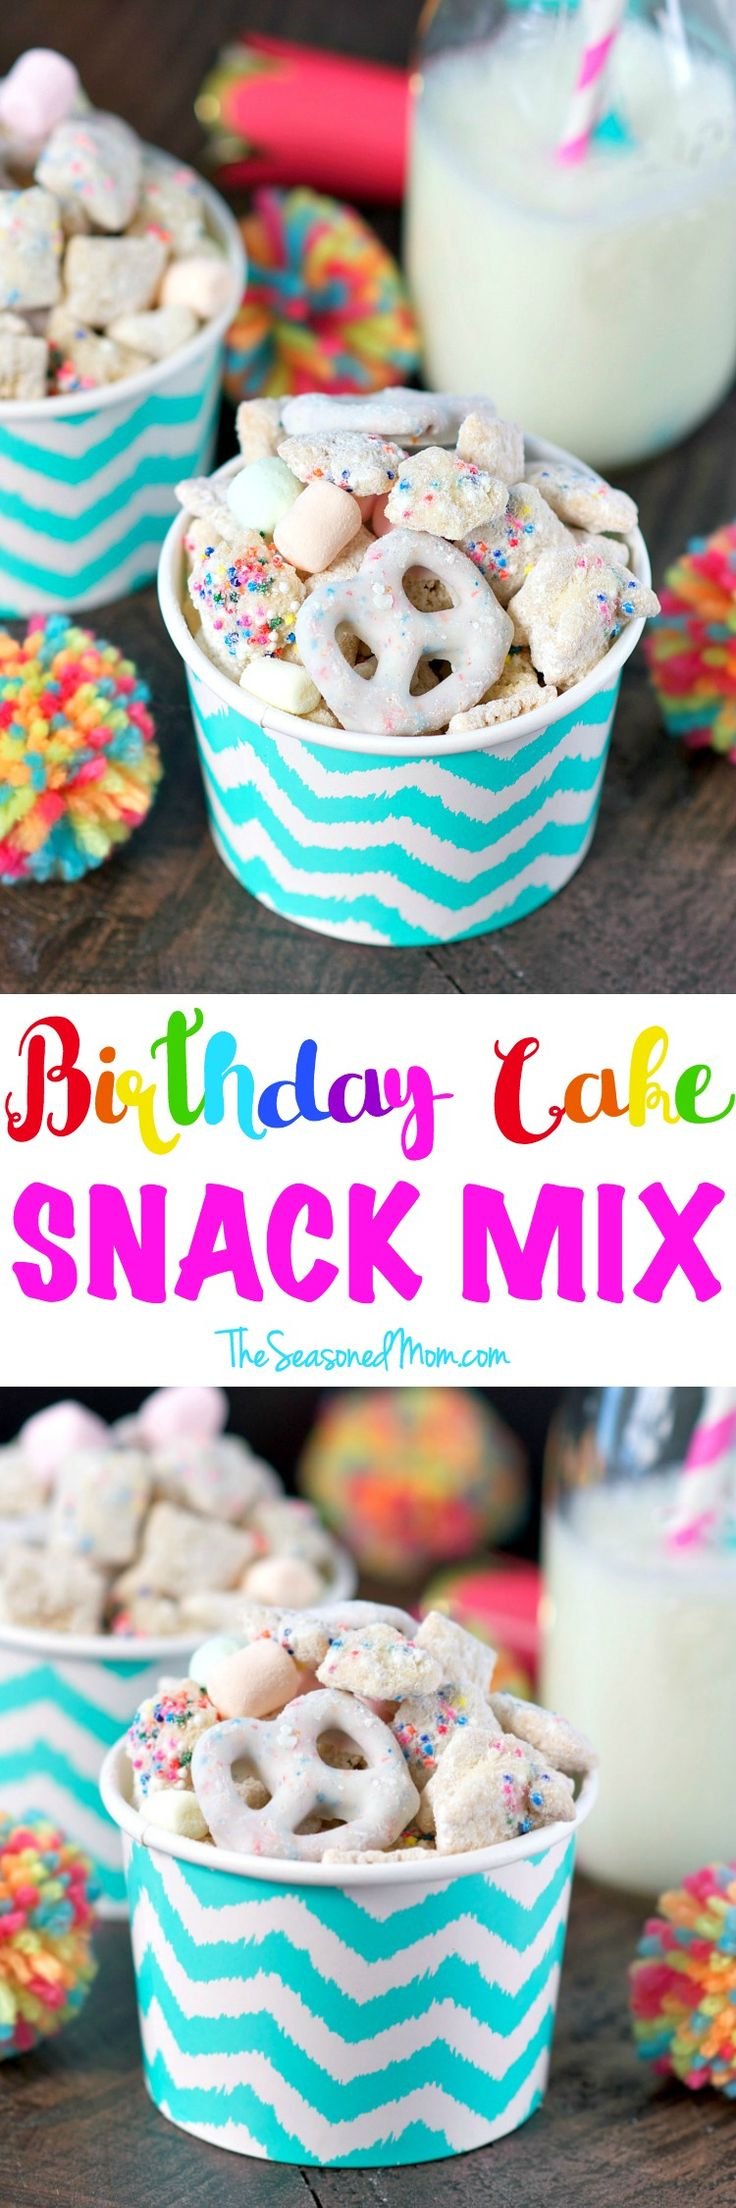 This salty-and-sweet Birthday Cake Snack Mix is the perfect cake batter-flavored Puppy Chow snack or dessert to serve at parties, in the school classroom, or for any other festive celebration! #FLIPZ #ad